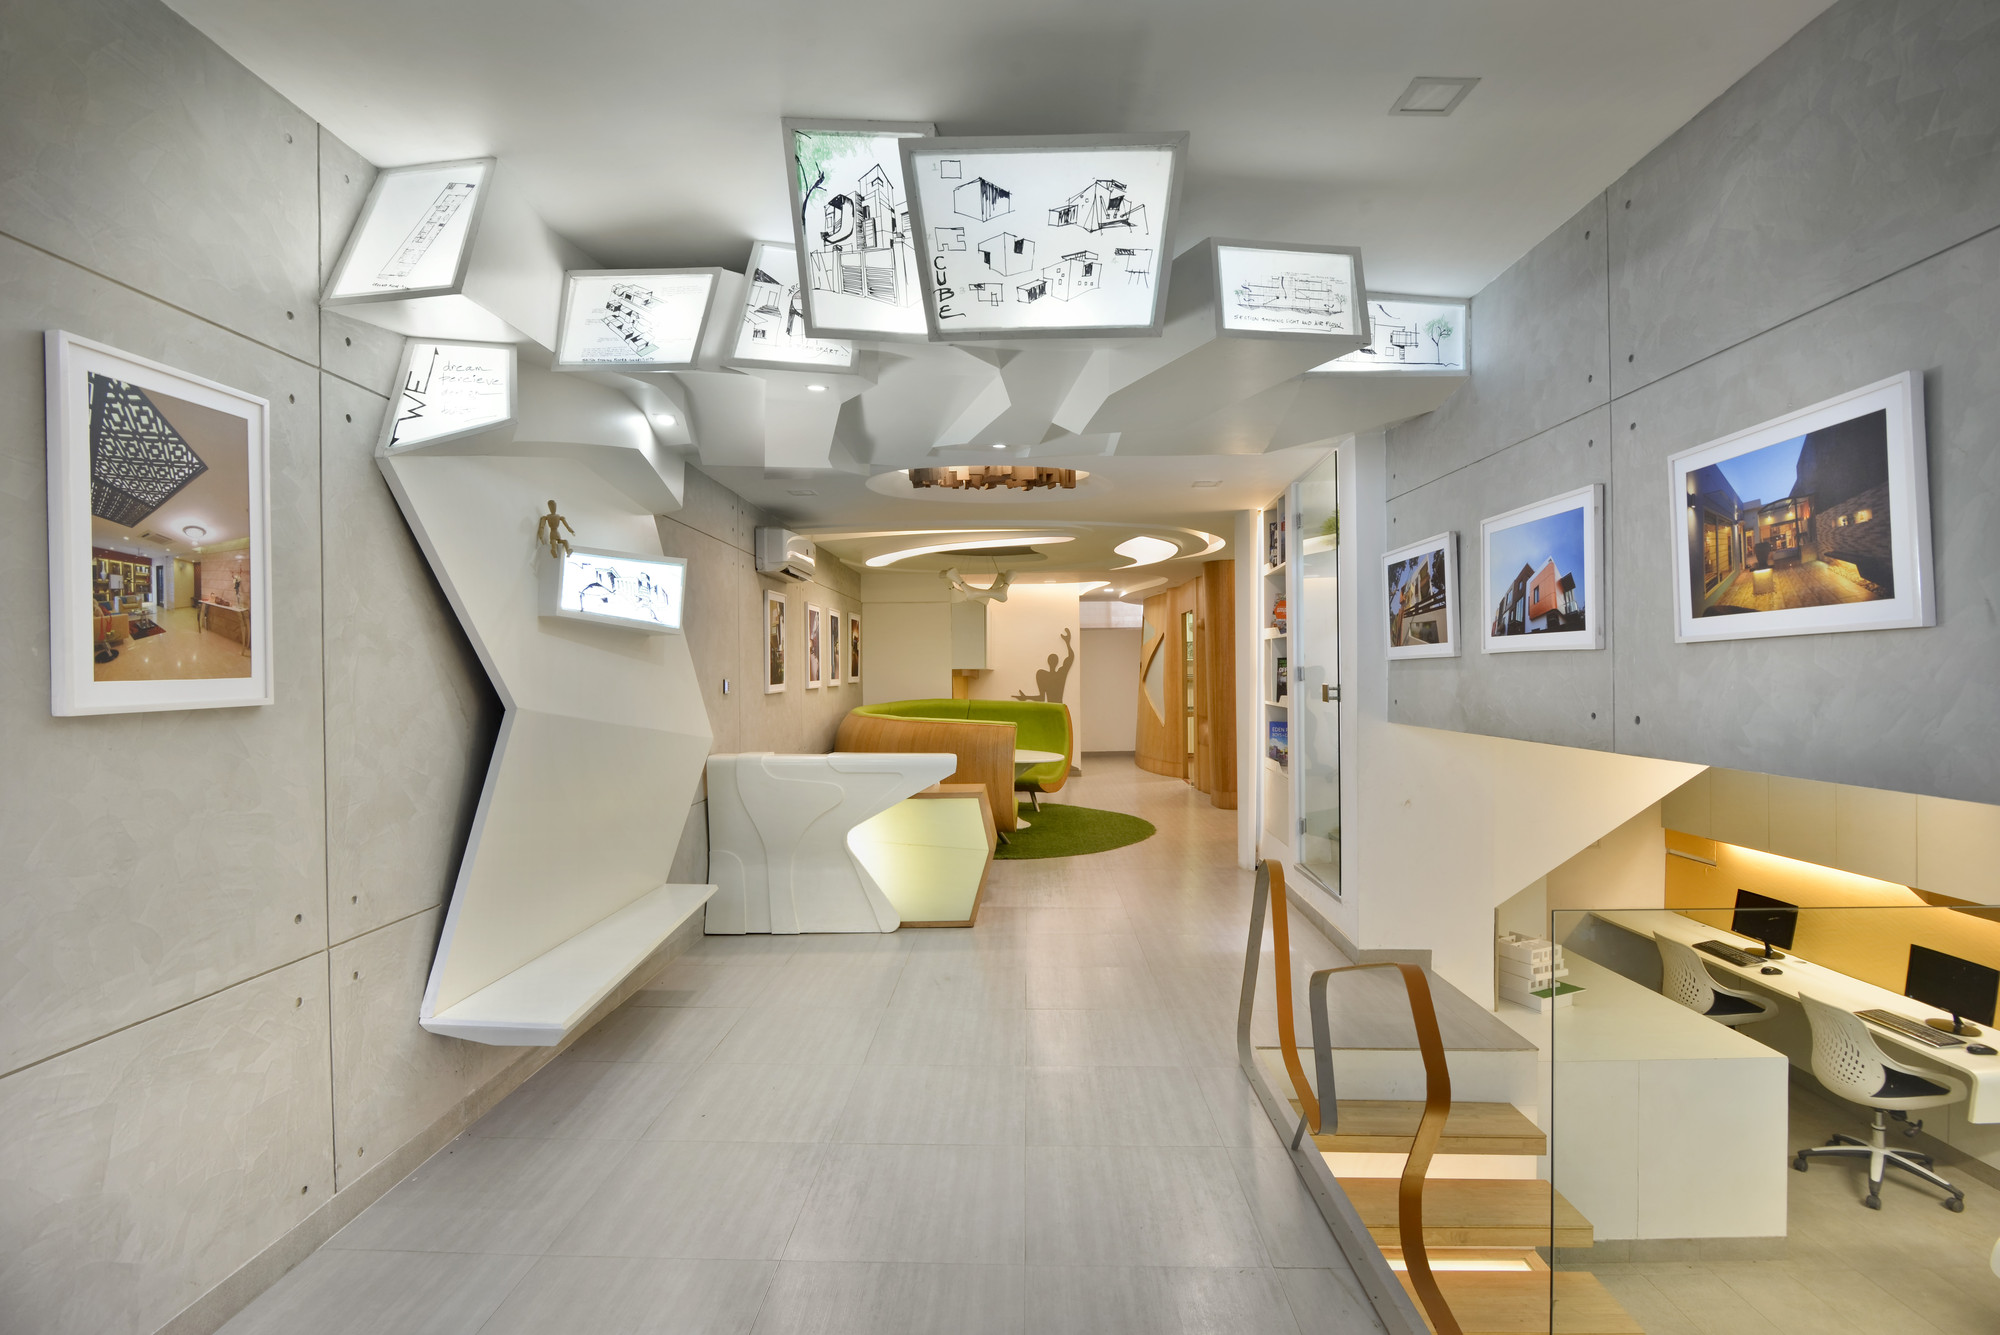 architect's office / spaces architects@ka | archdaily